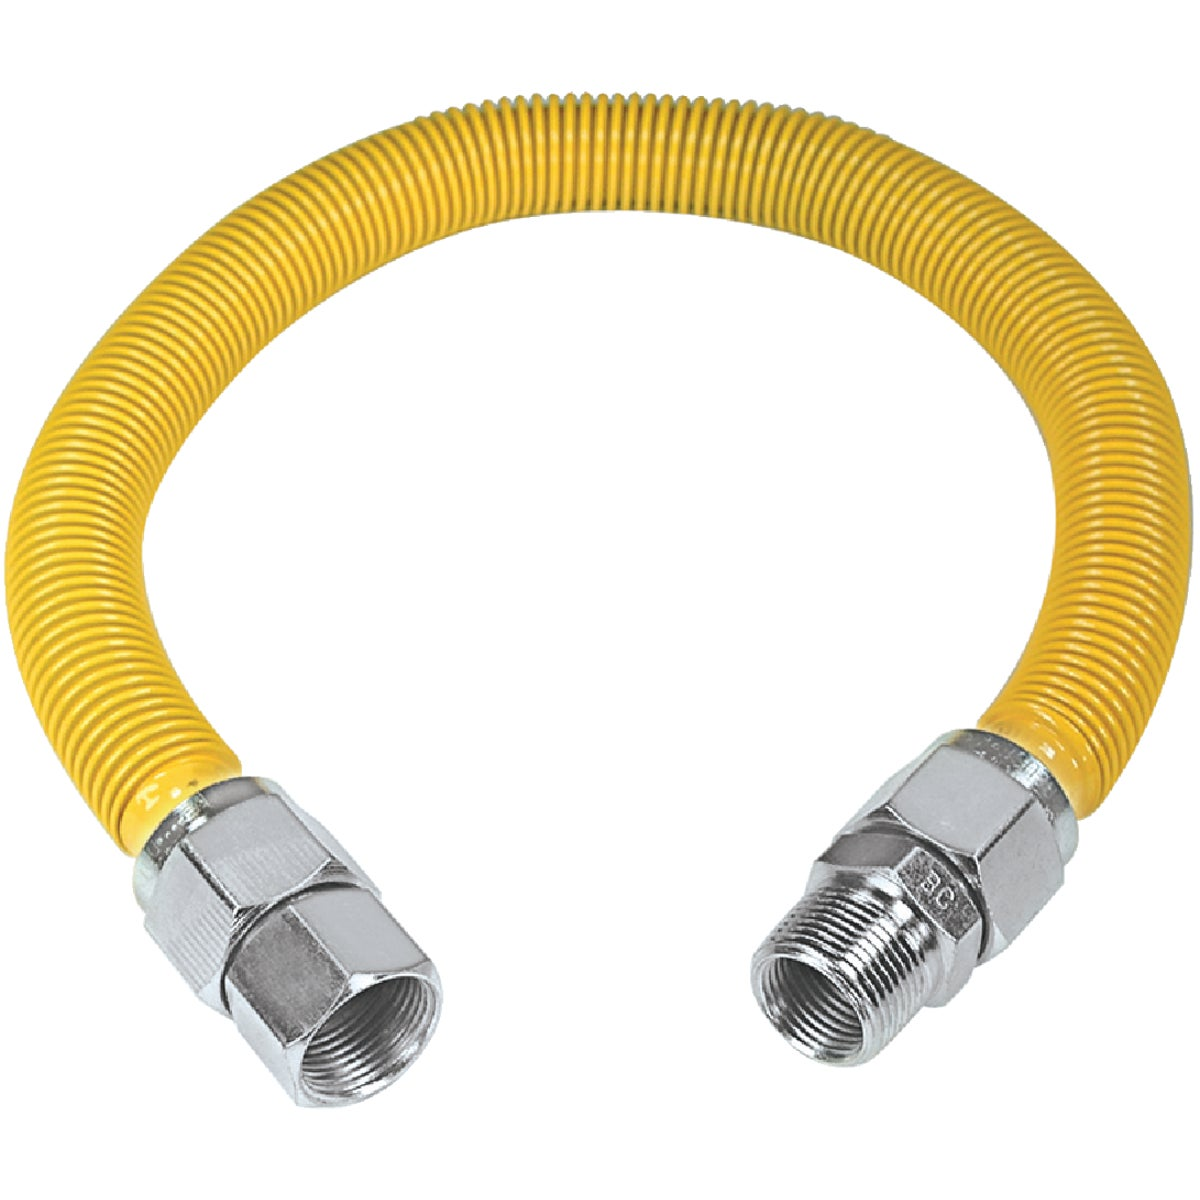 ProCoat Coated Stainless Steel Gas Connector, CSSB21-36